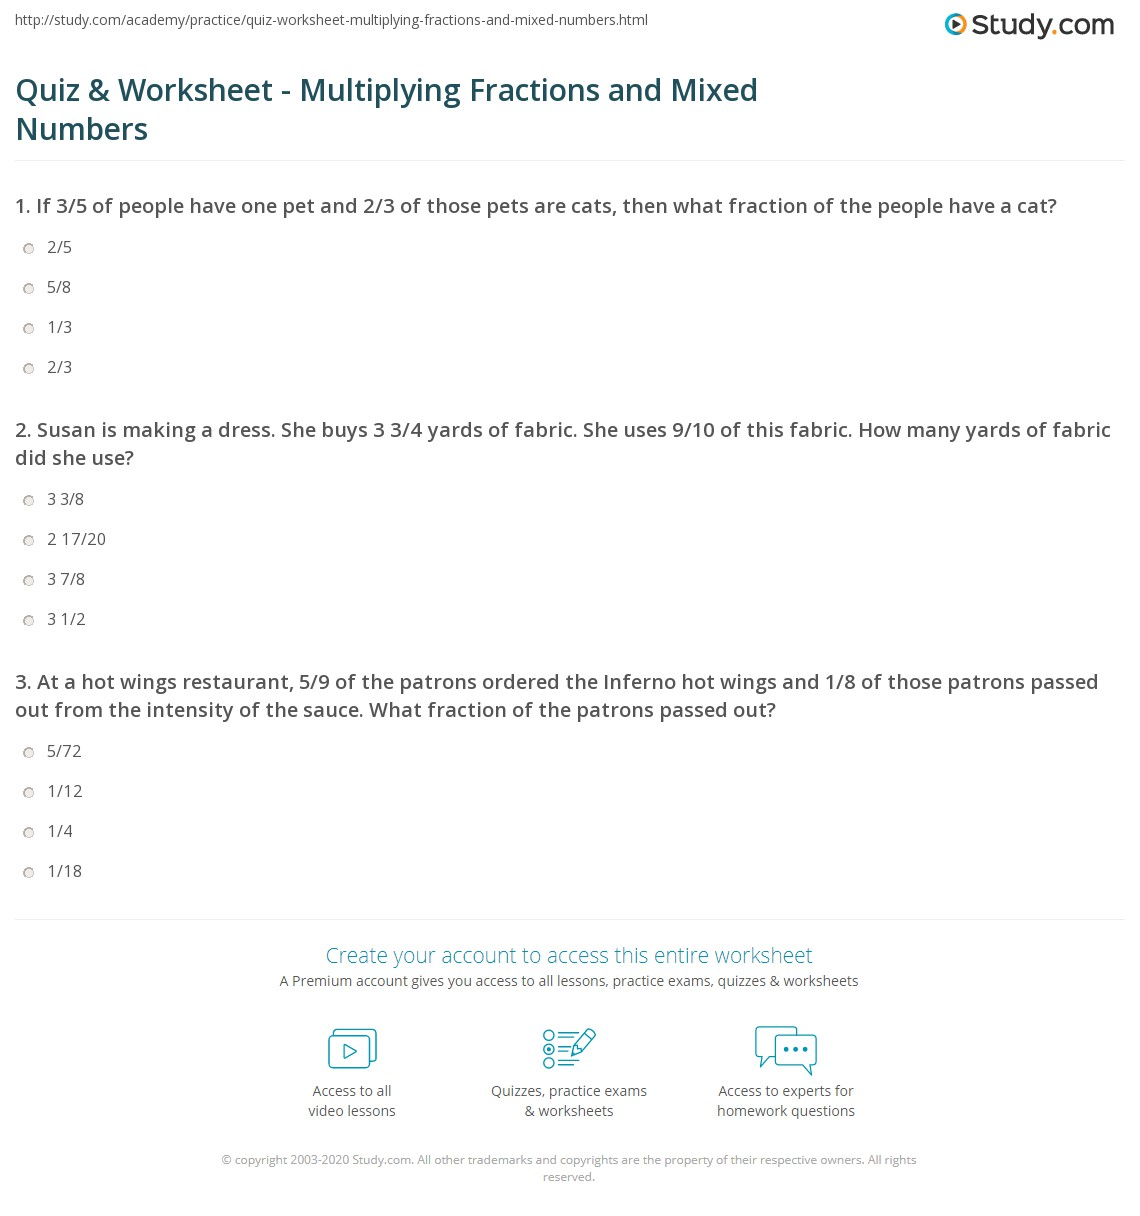 Worksheet Multiplying Fractions Word Problems Pdf multiplying fractions quiz adding with the same worksheet and mixed numbers studycom numbers